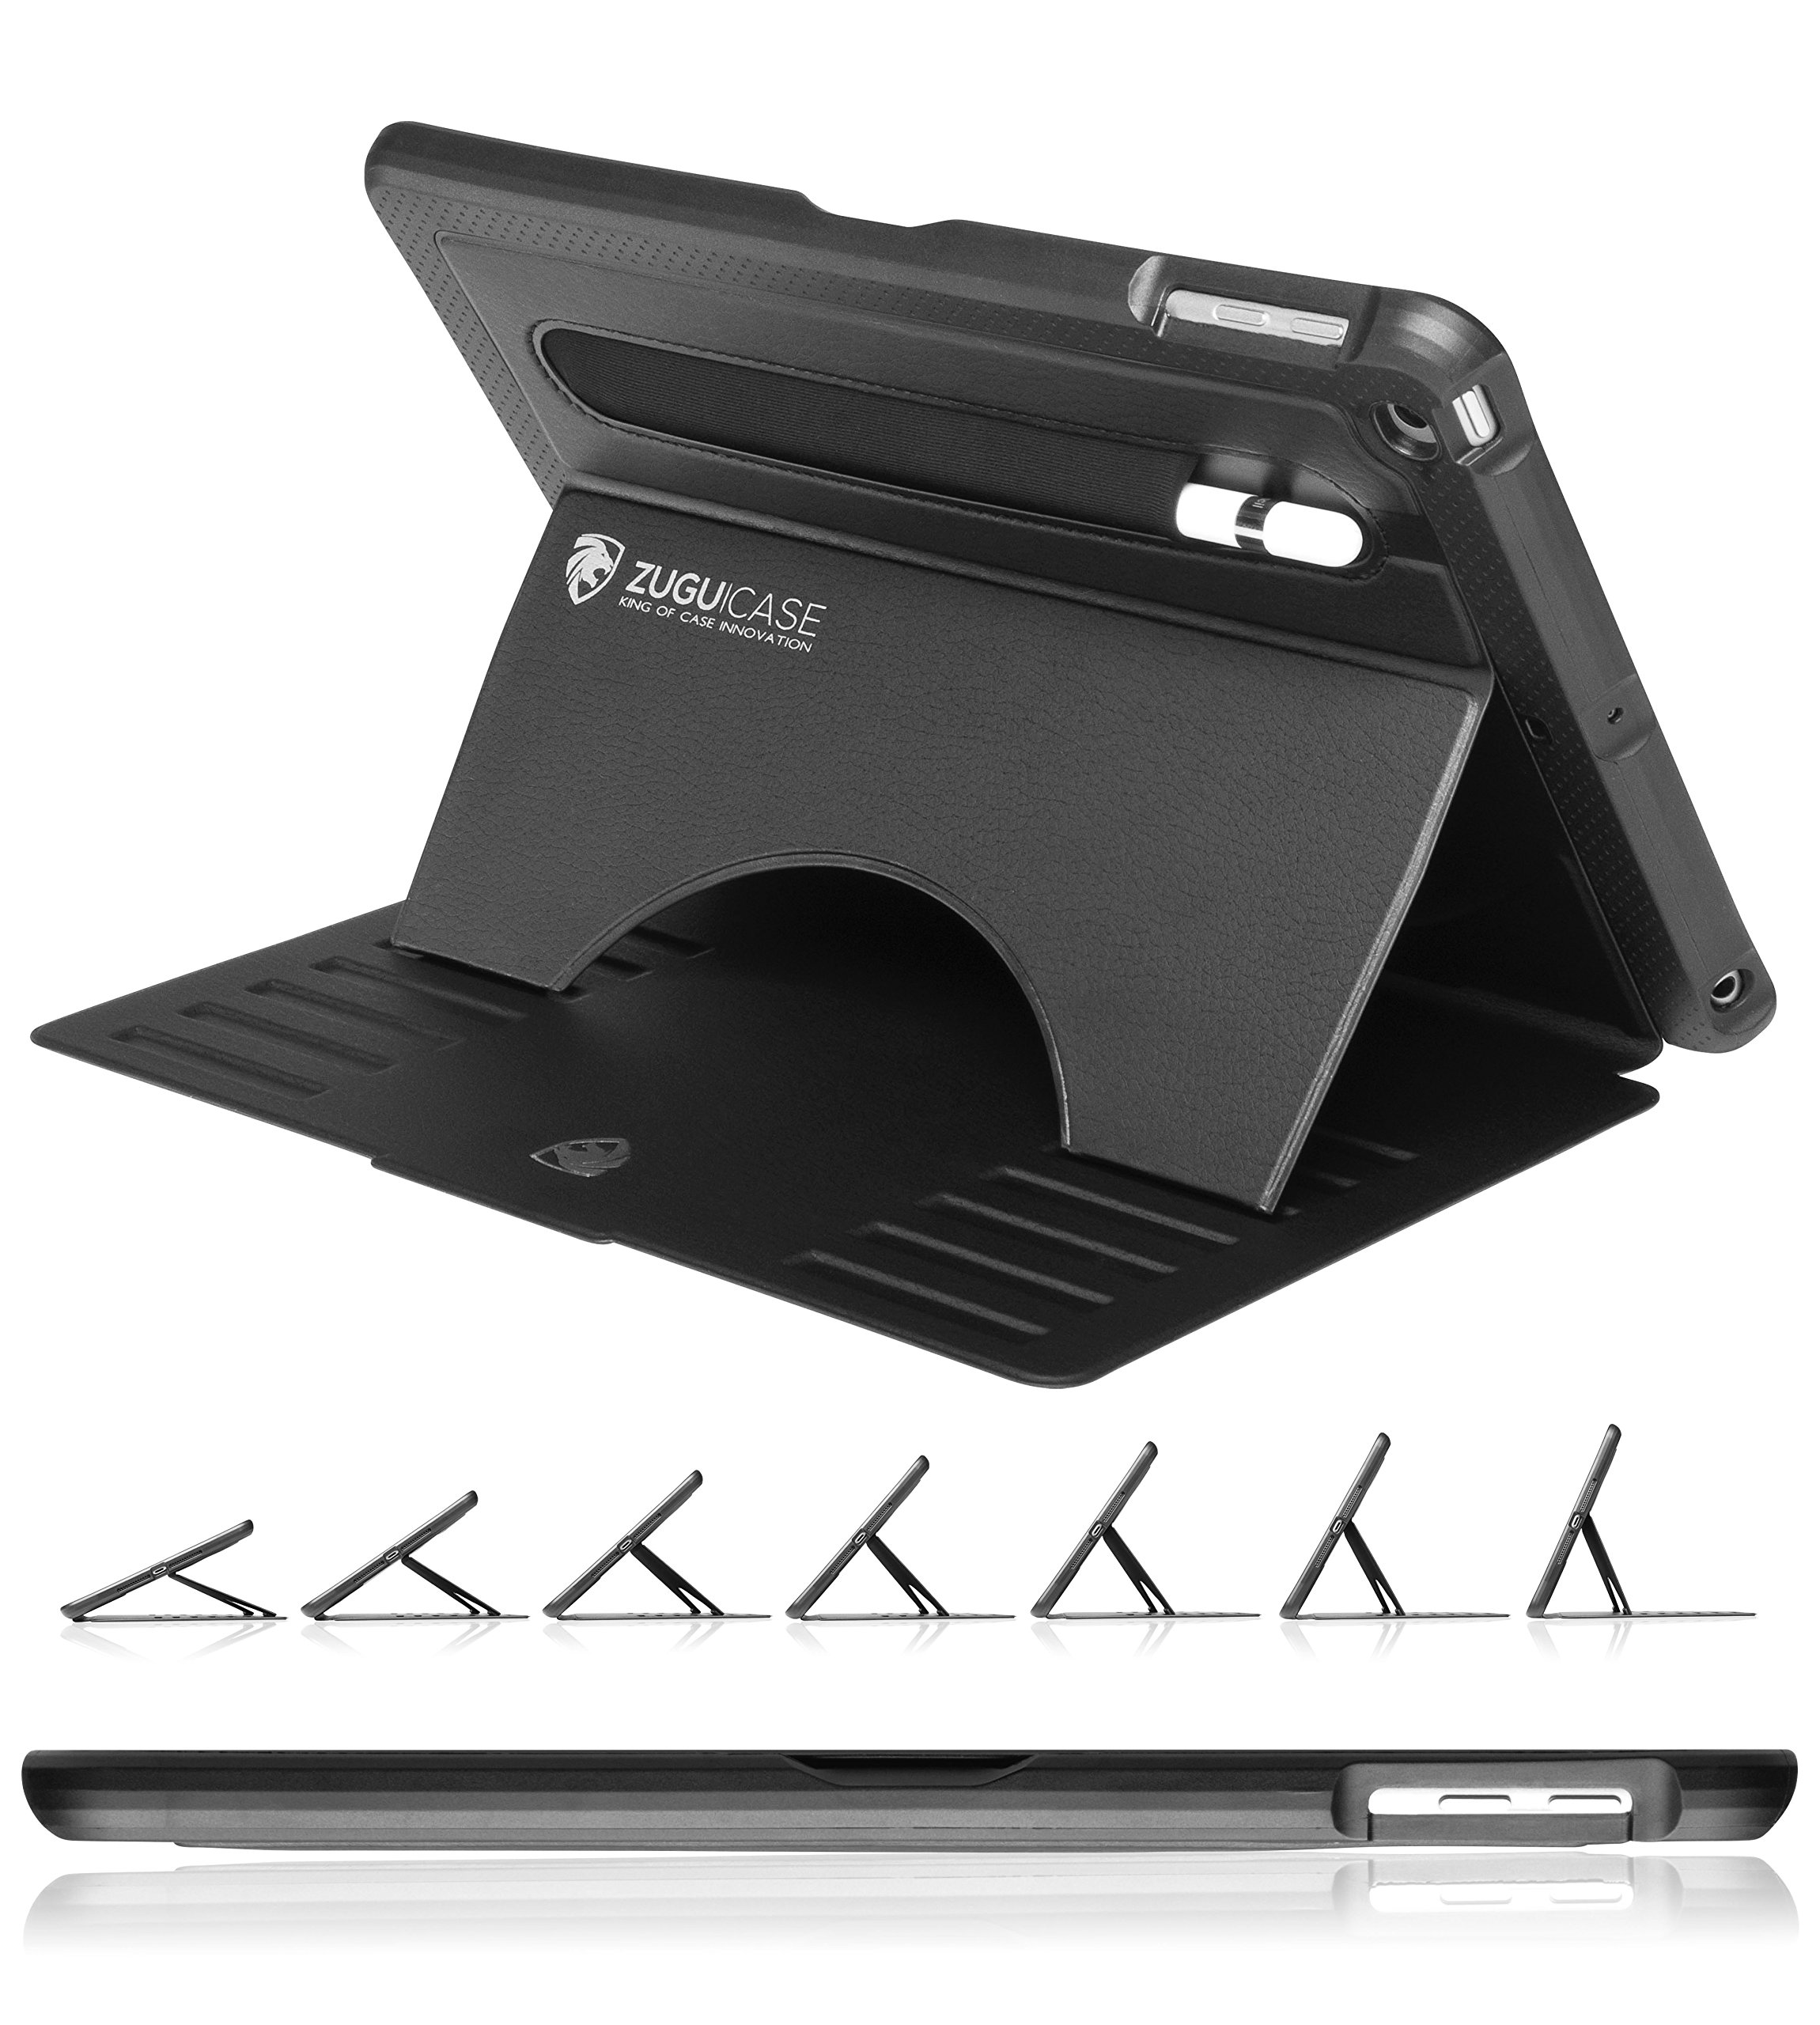 ZUGU CASE - 9.7 iPad 2018/2017 5th / 6th Gen & iPad Air 1 Prodigy X Case - Very Protective But Thin + Convenient Magnetic Stand + Sleep/Wake Cover (Black)